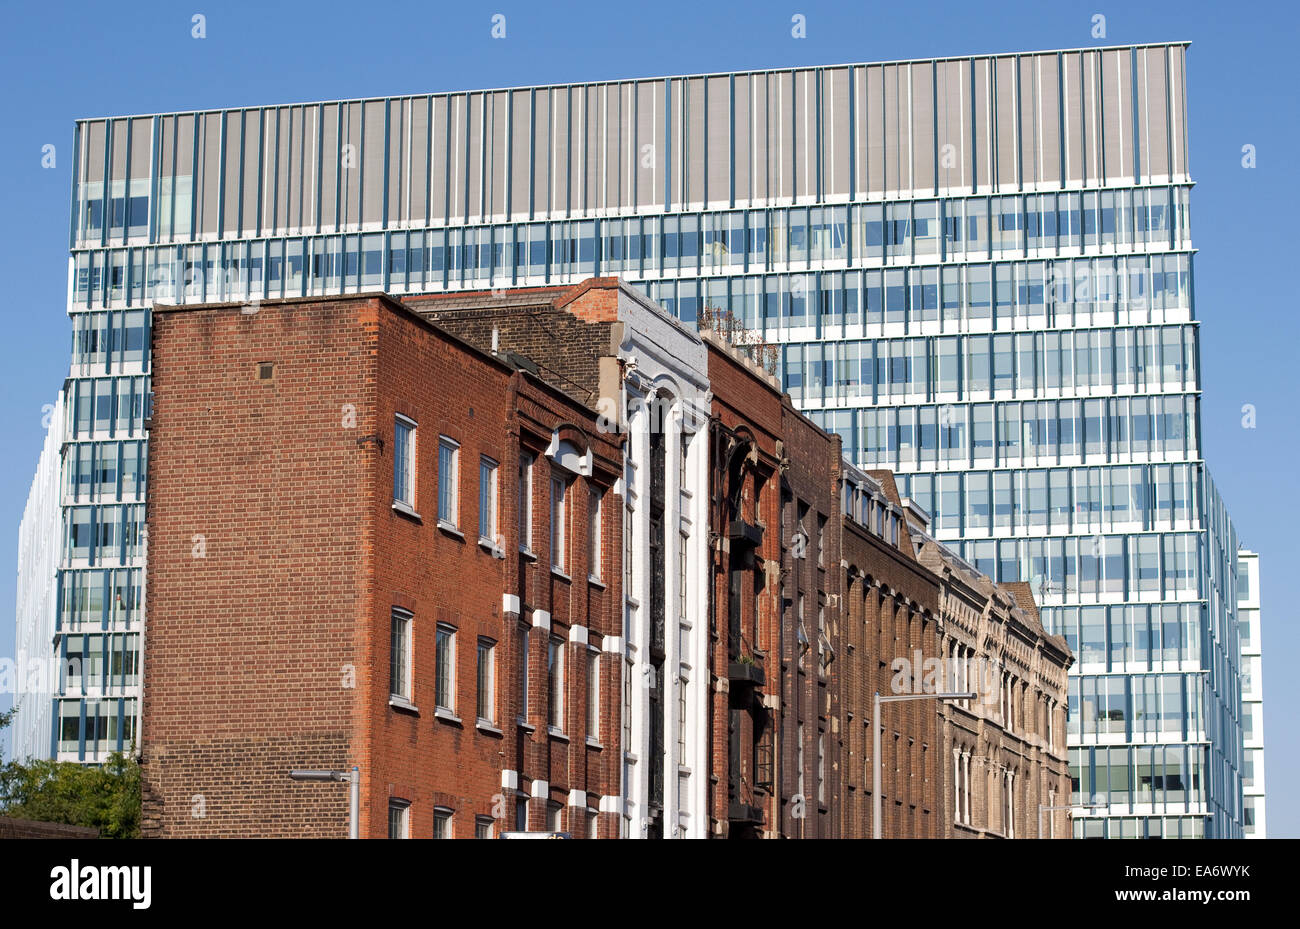 Contrasting architecture of the old and new with the Bankside development on Southwark Street, London - Stock Image